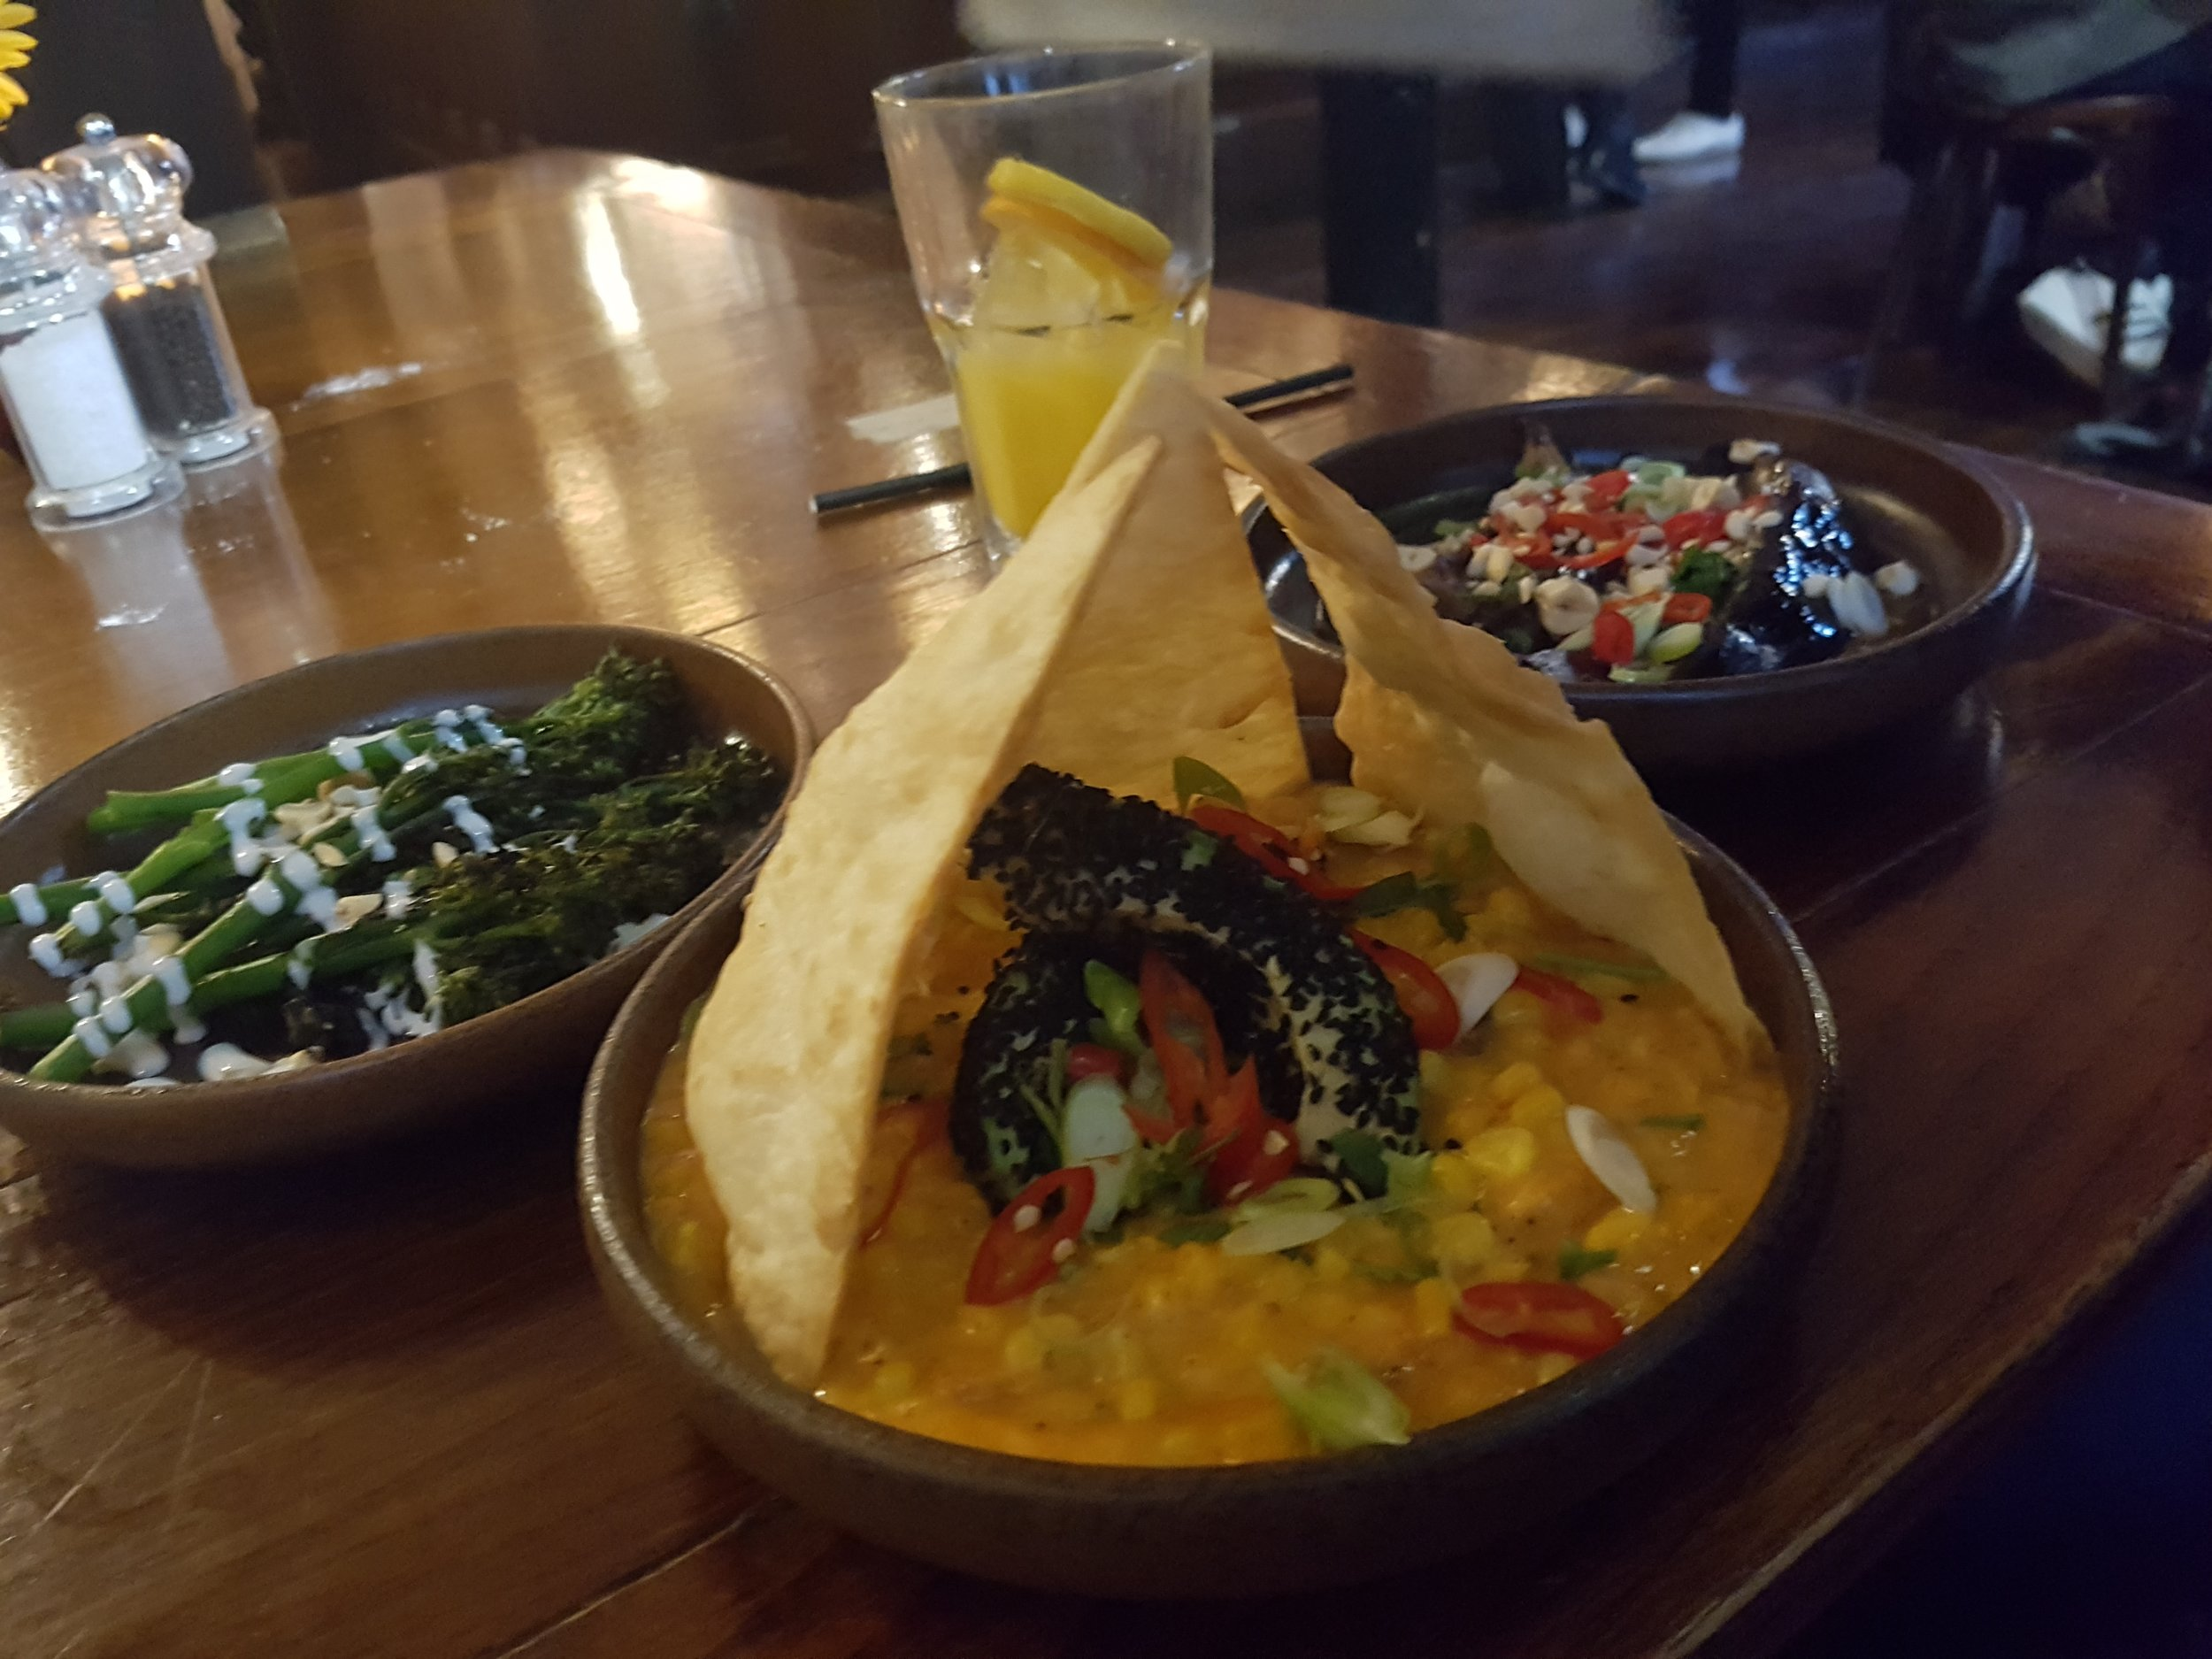 Vegan options at The Greener Man Pub